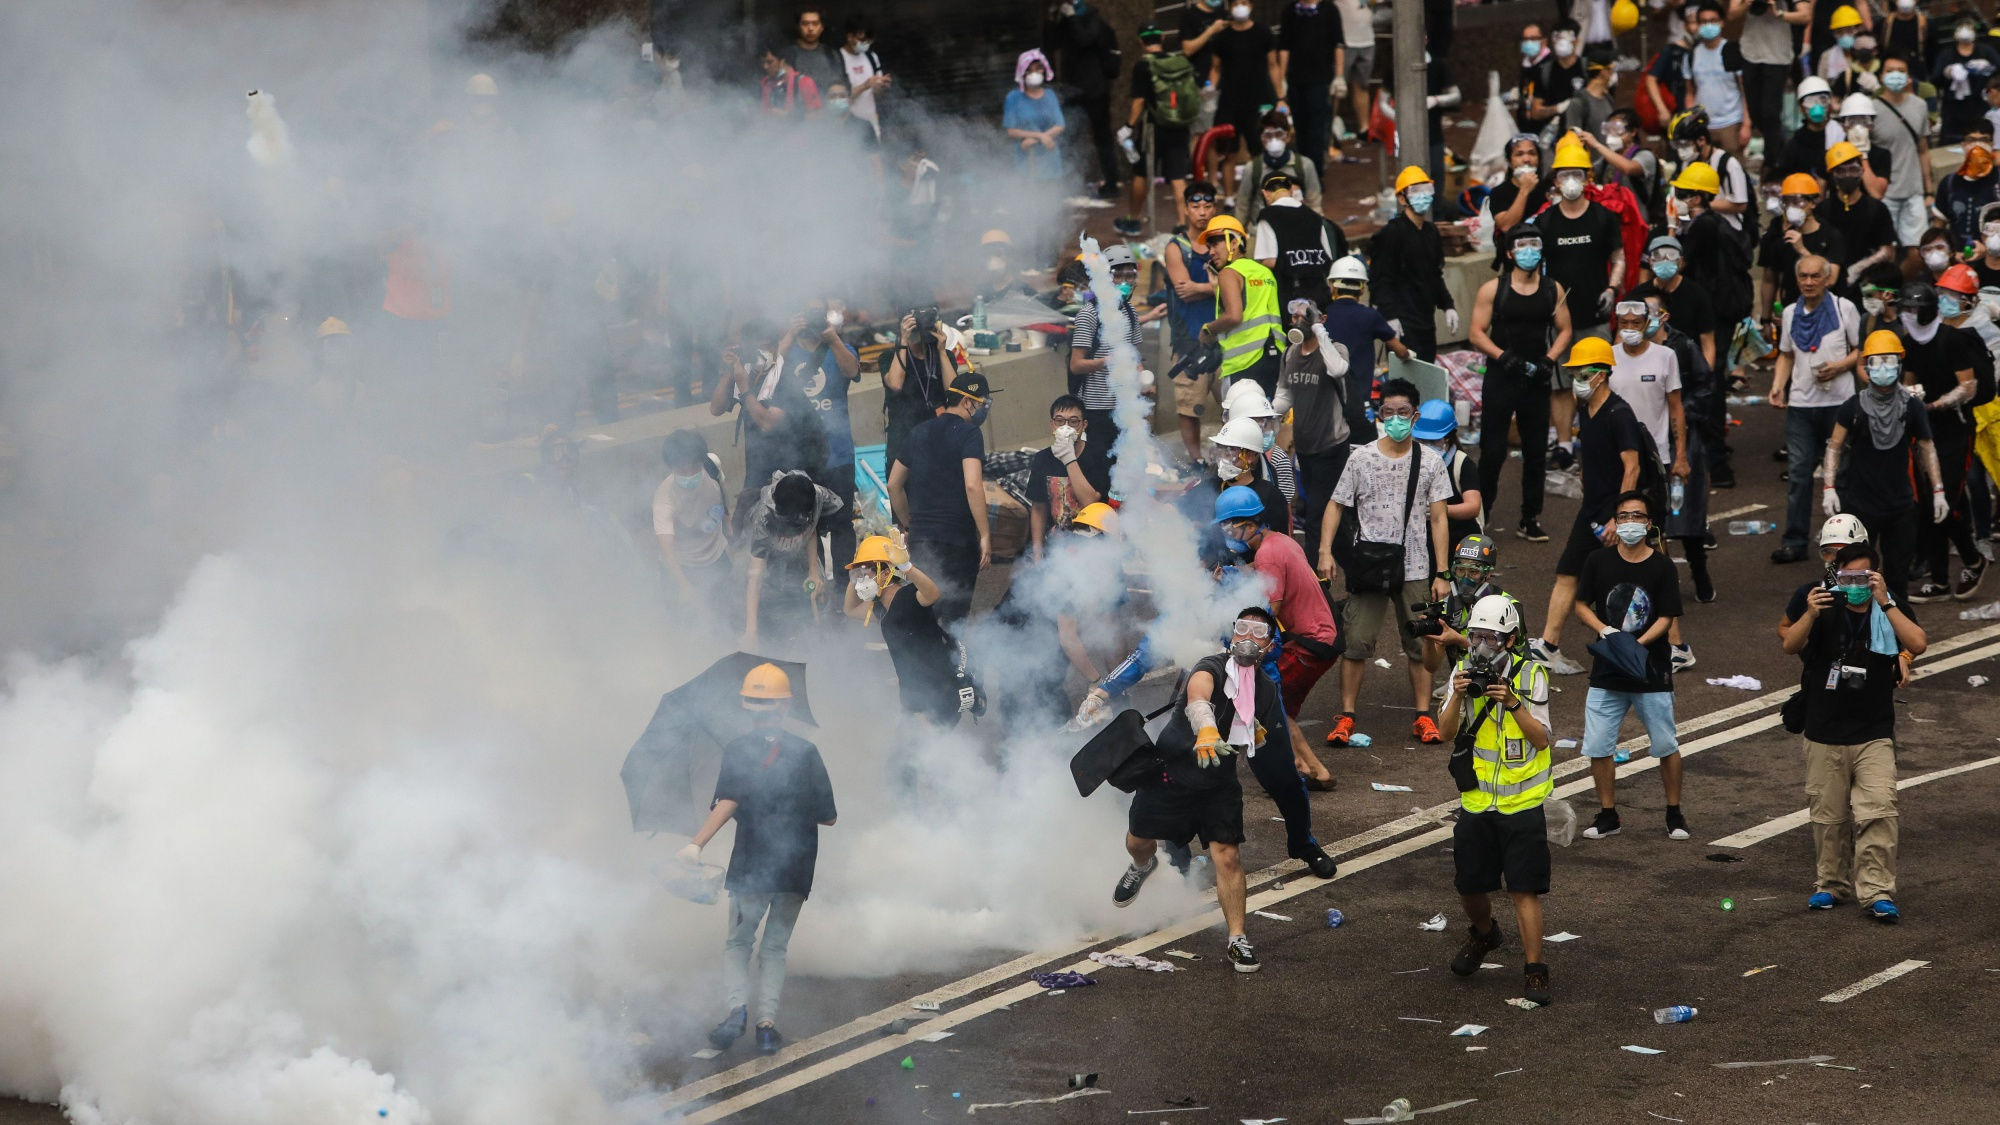 Hong Kong Extradition Bill Protest Updates: Police Fire Tear